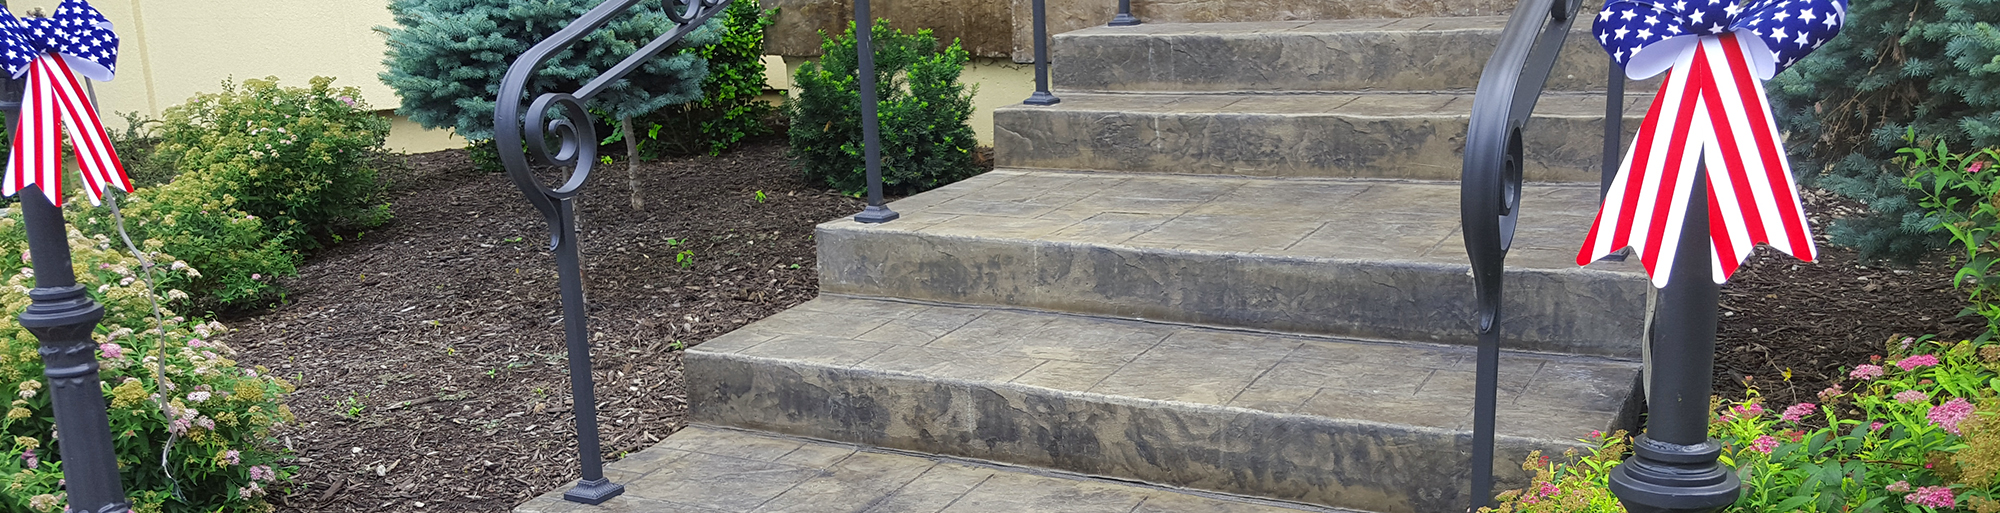 Create a Grand Entrance with Stamped Stairs